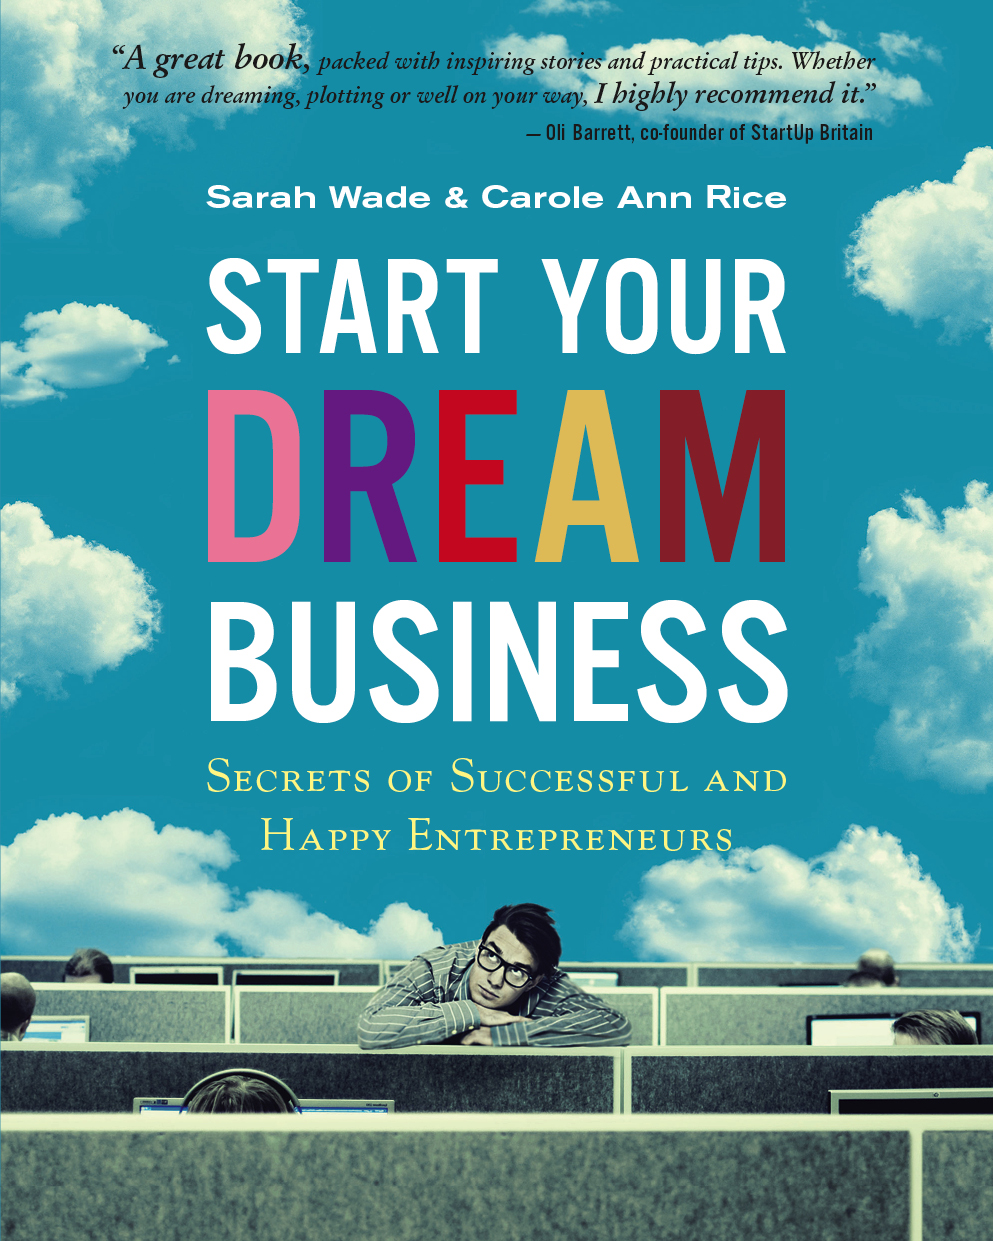 Business Book Cover Job : Start your dream business find job